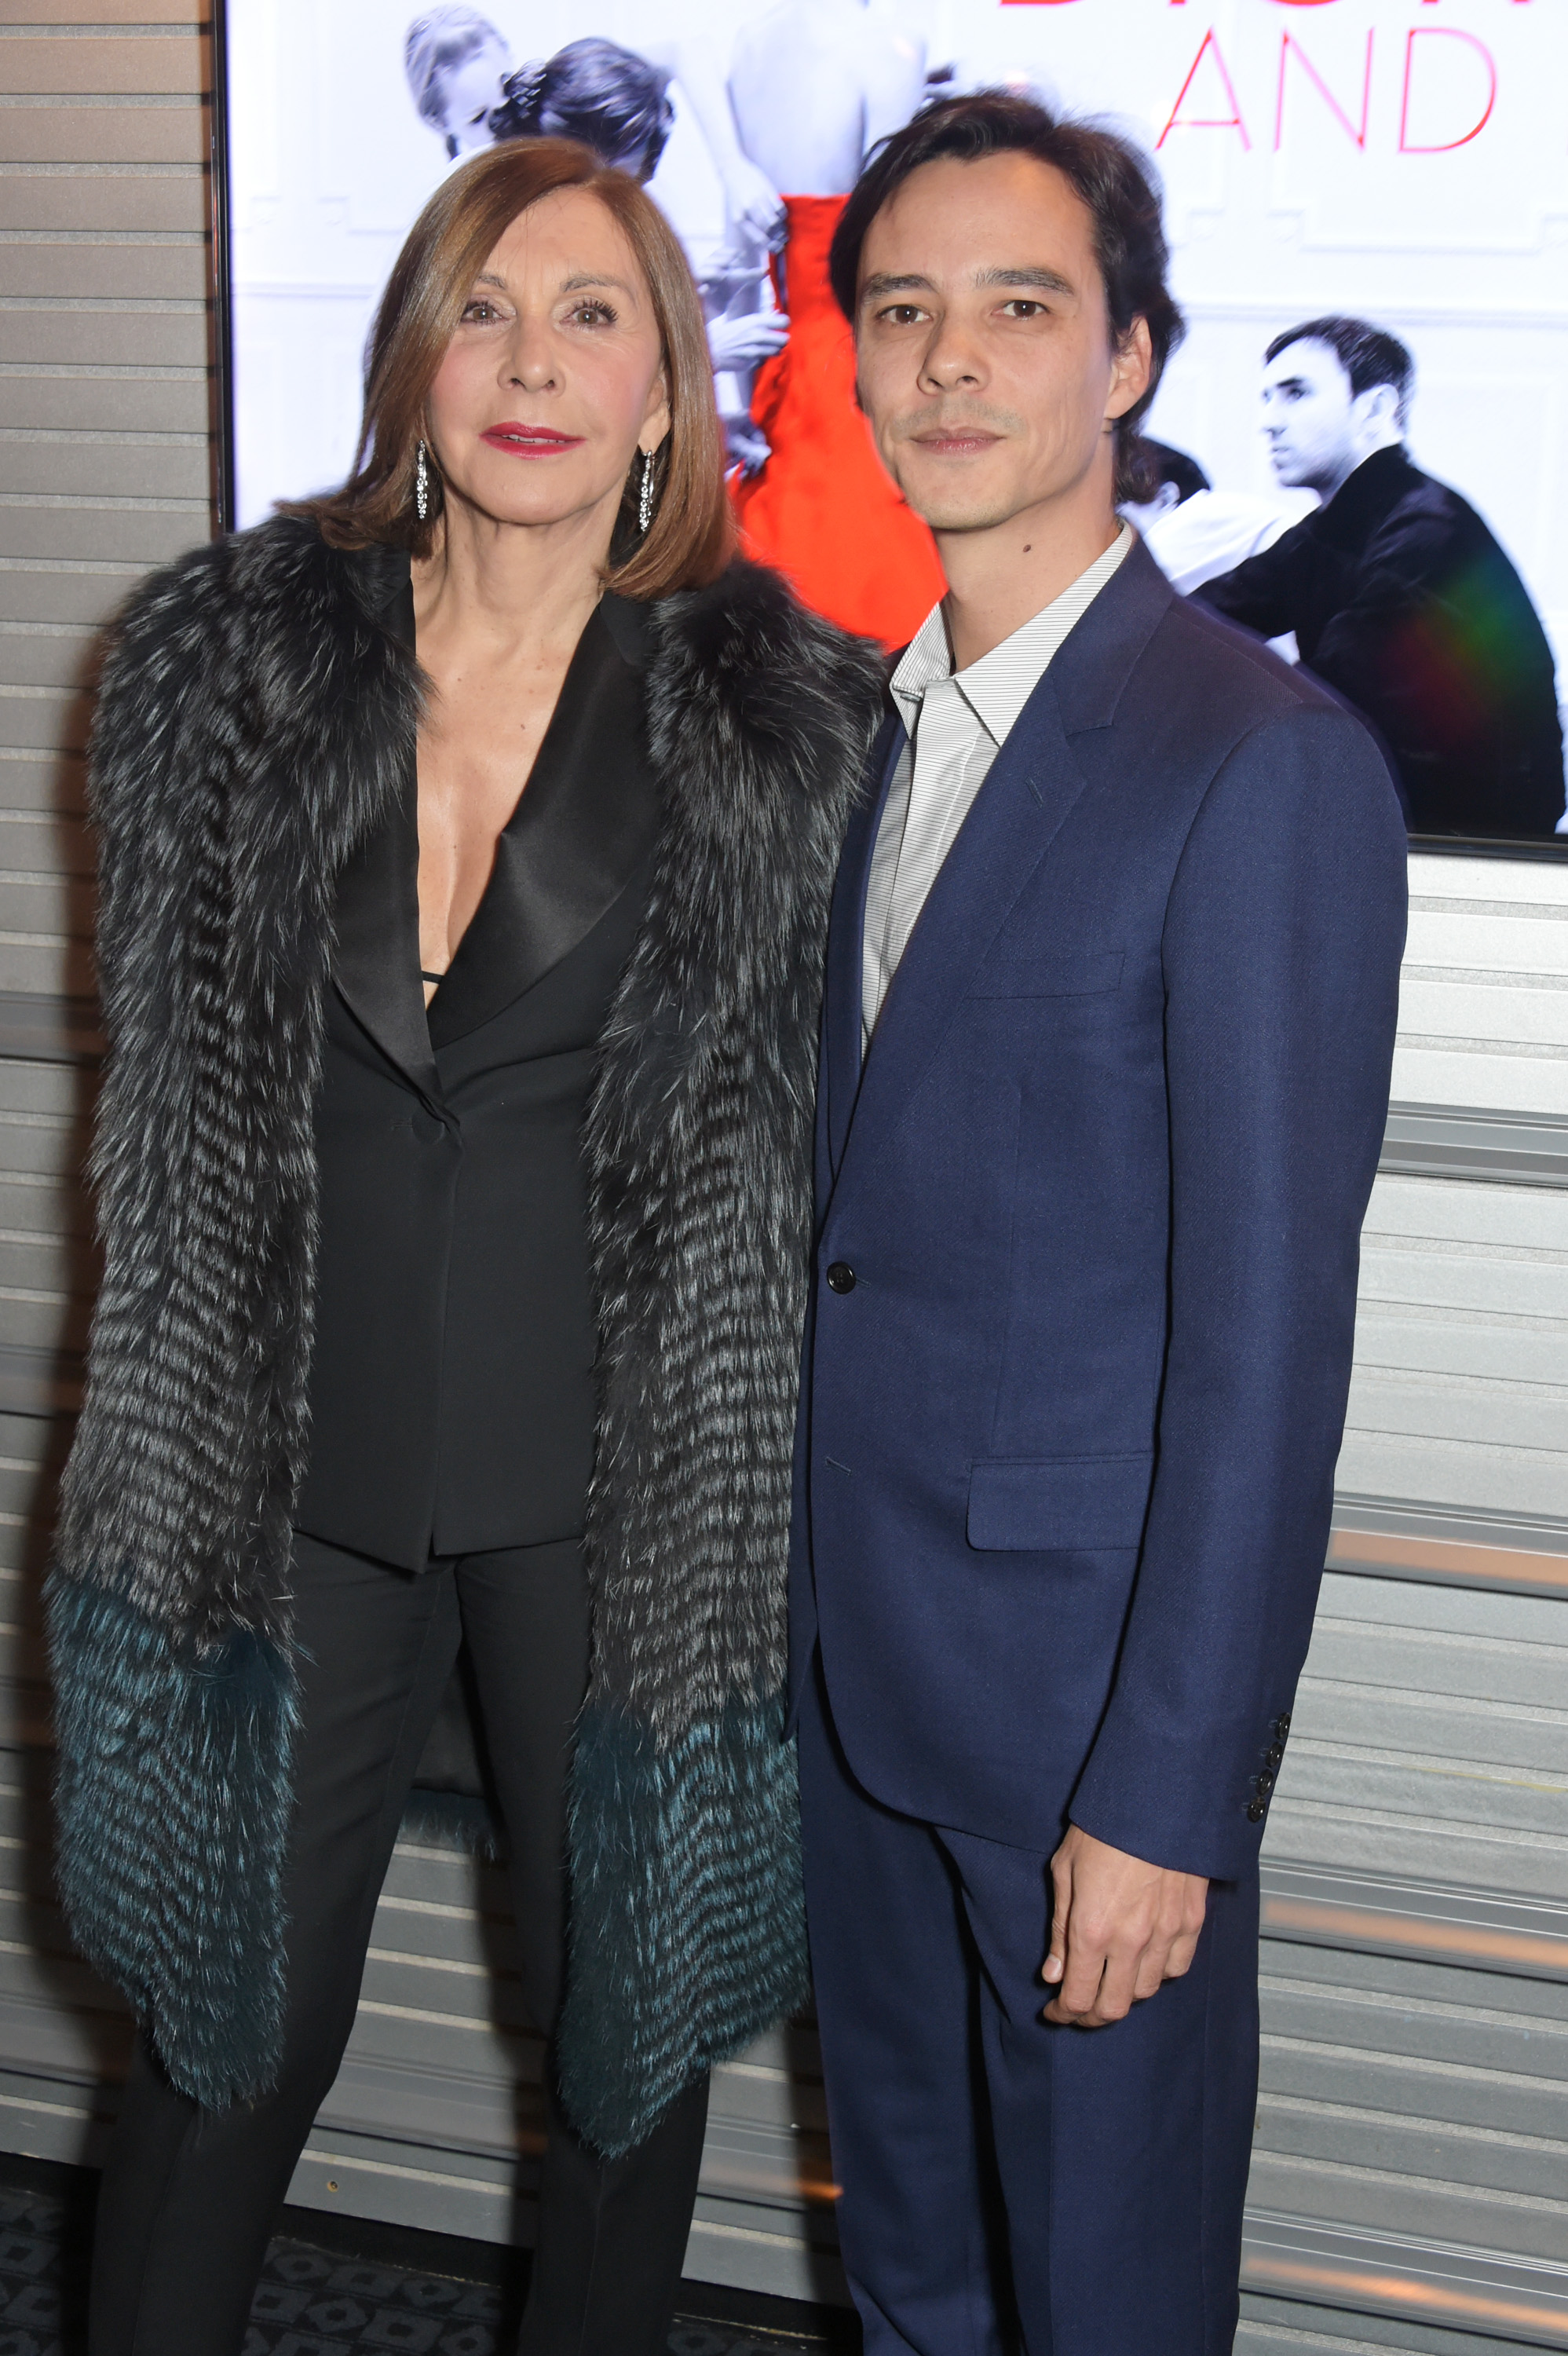 Catherine Riviere & Frederic Tcheng.JPG